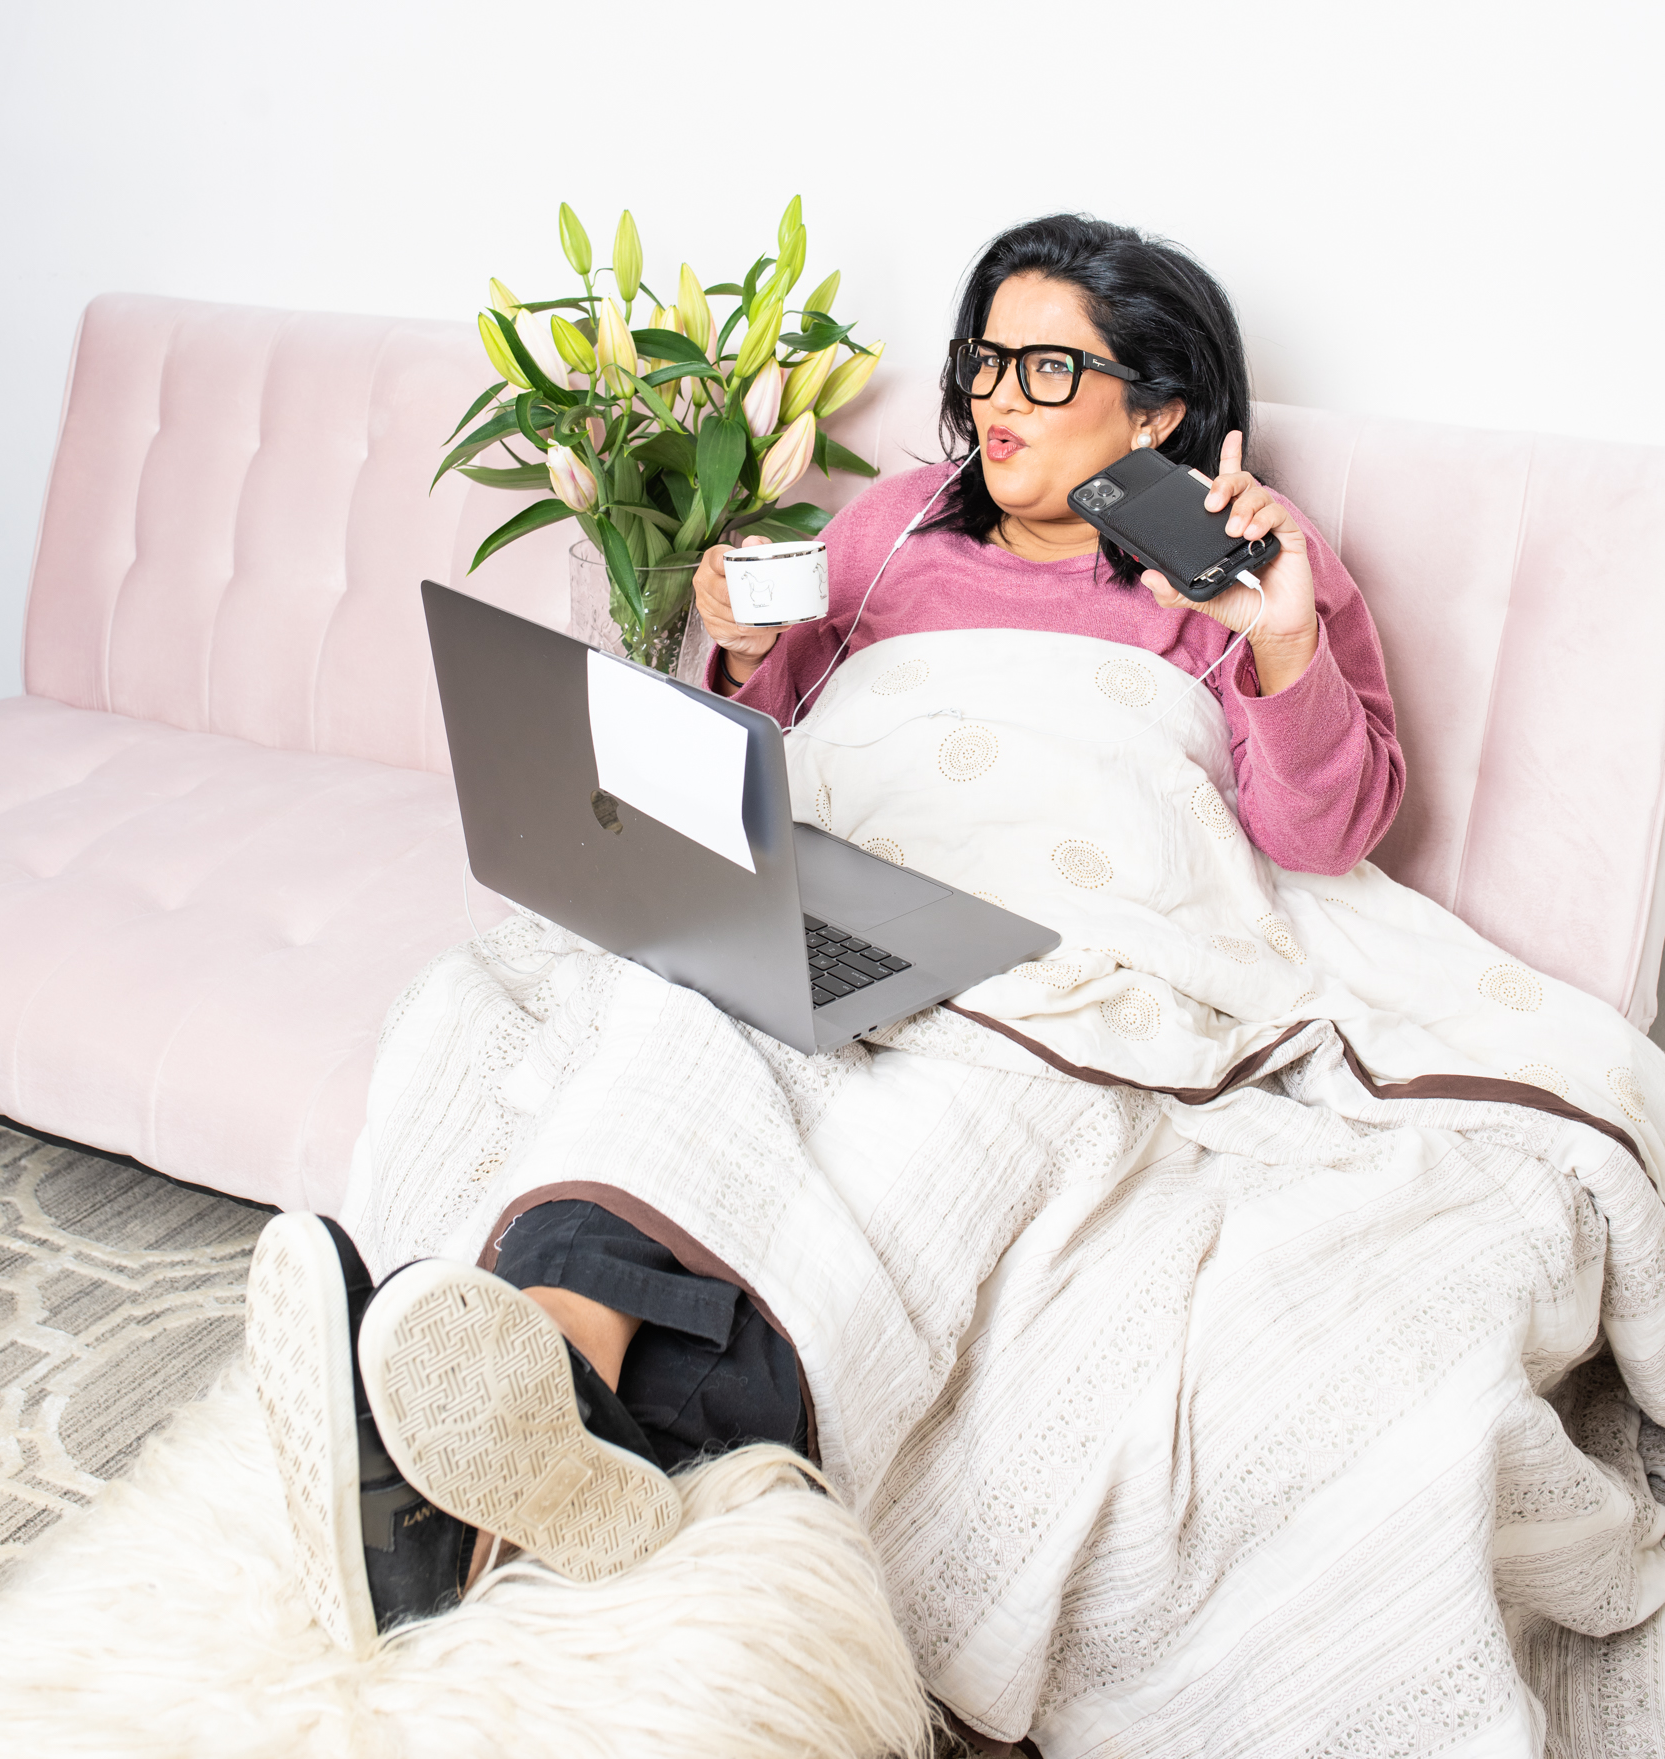 A comedian sits on a couch with a laptop, coffee, and phone. She may or may not be working.